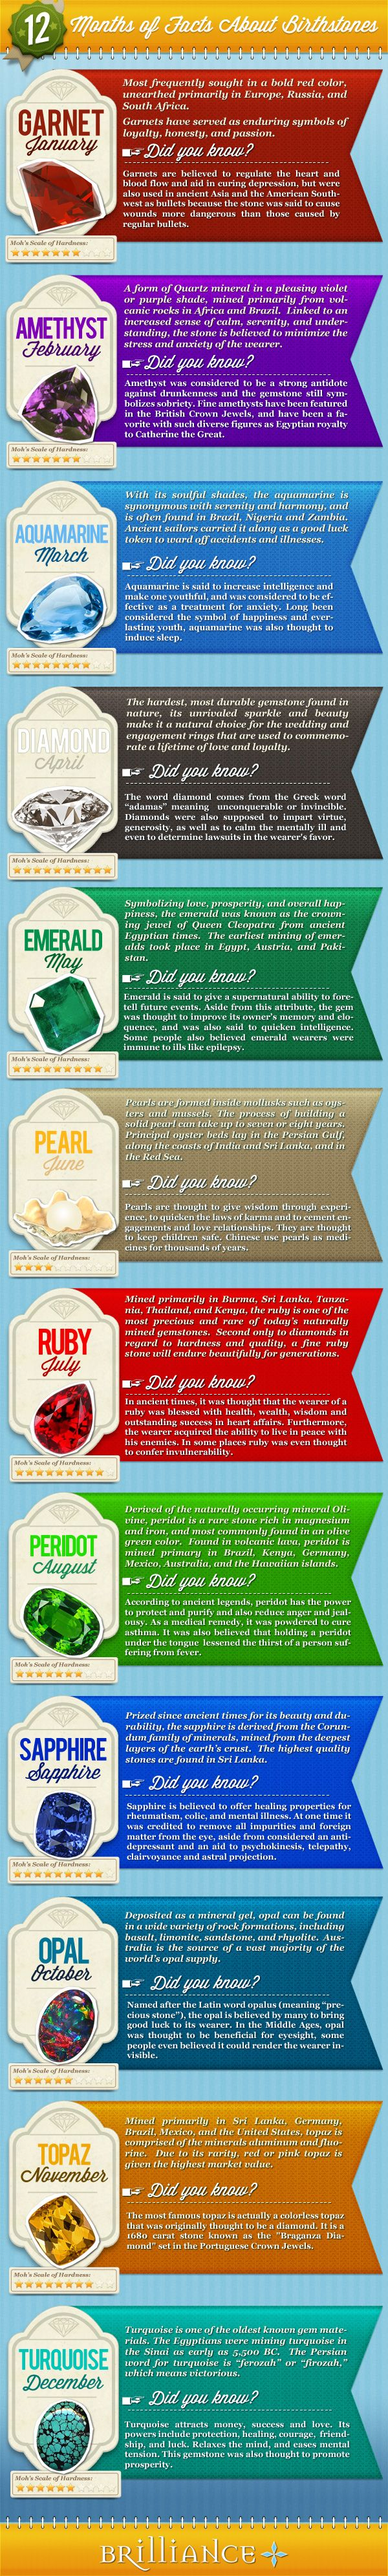 """With Mother's Day right around the corner we thought an infographic guide to each month's birthstone would help. This year, beat out your siblings' gifts (or that cheesy card) and bring your """"A-game"""" with Gemstone jewelry for the mothers in your life."""